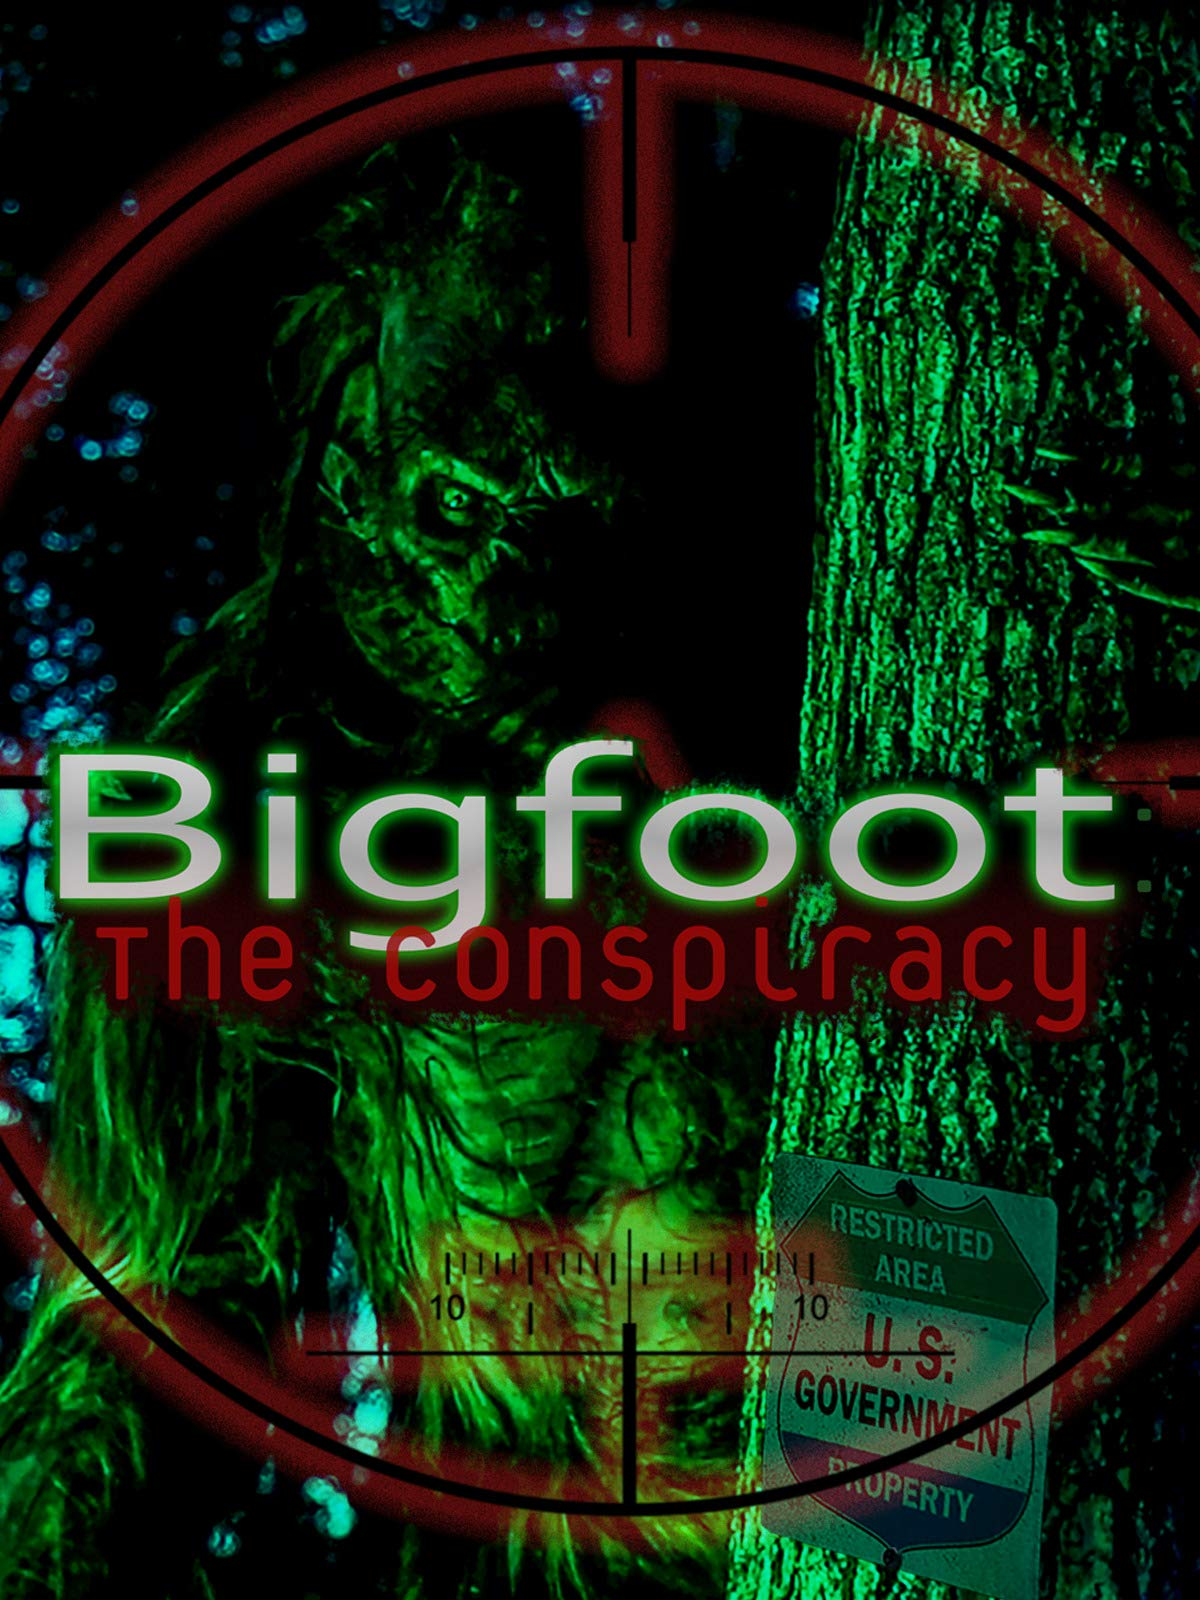 Bigfoot: The Conspiracy